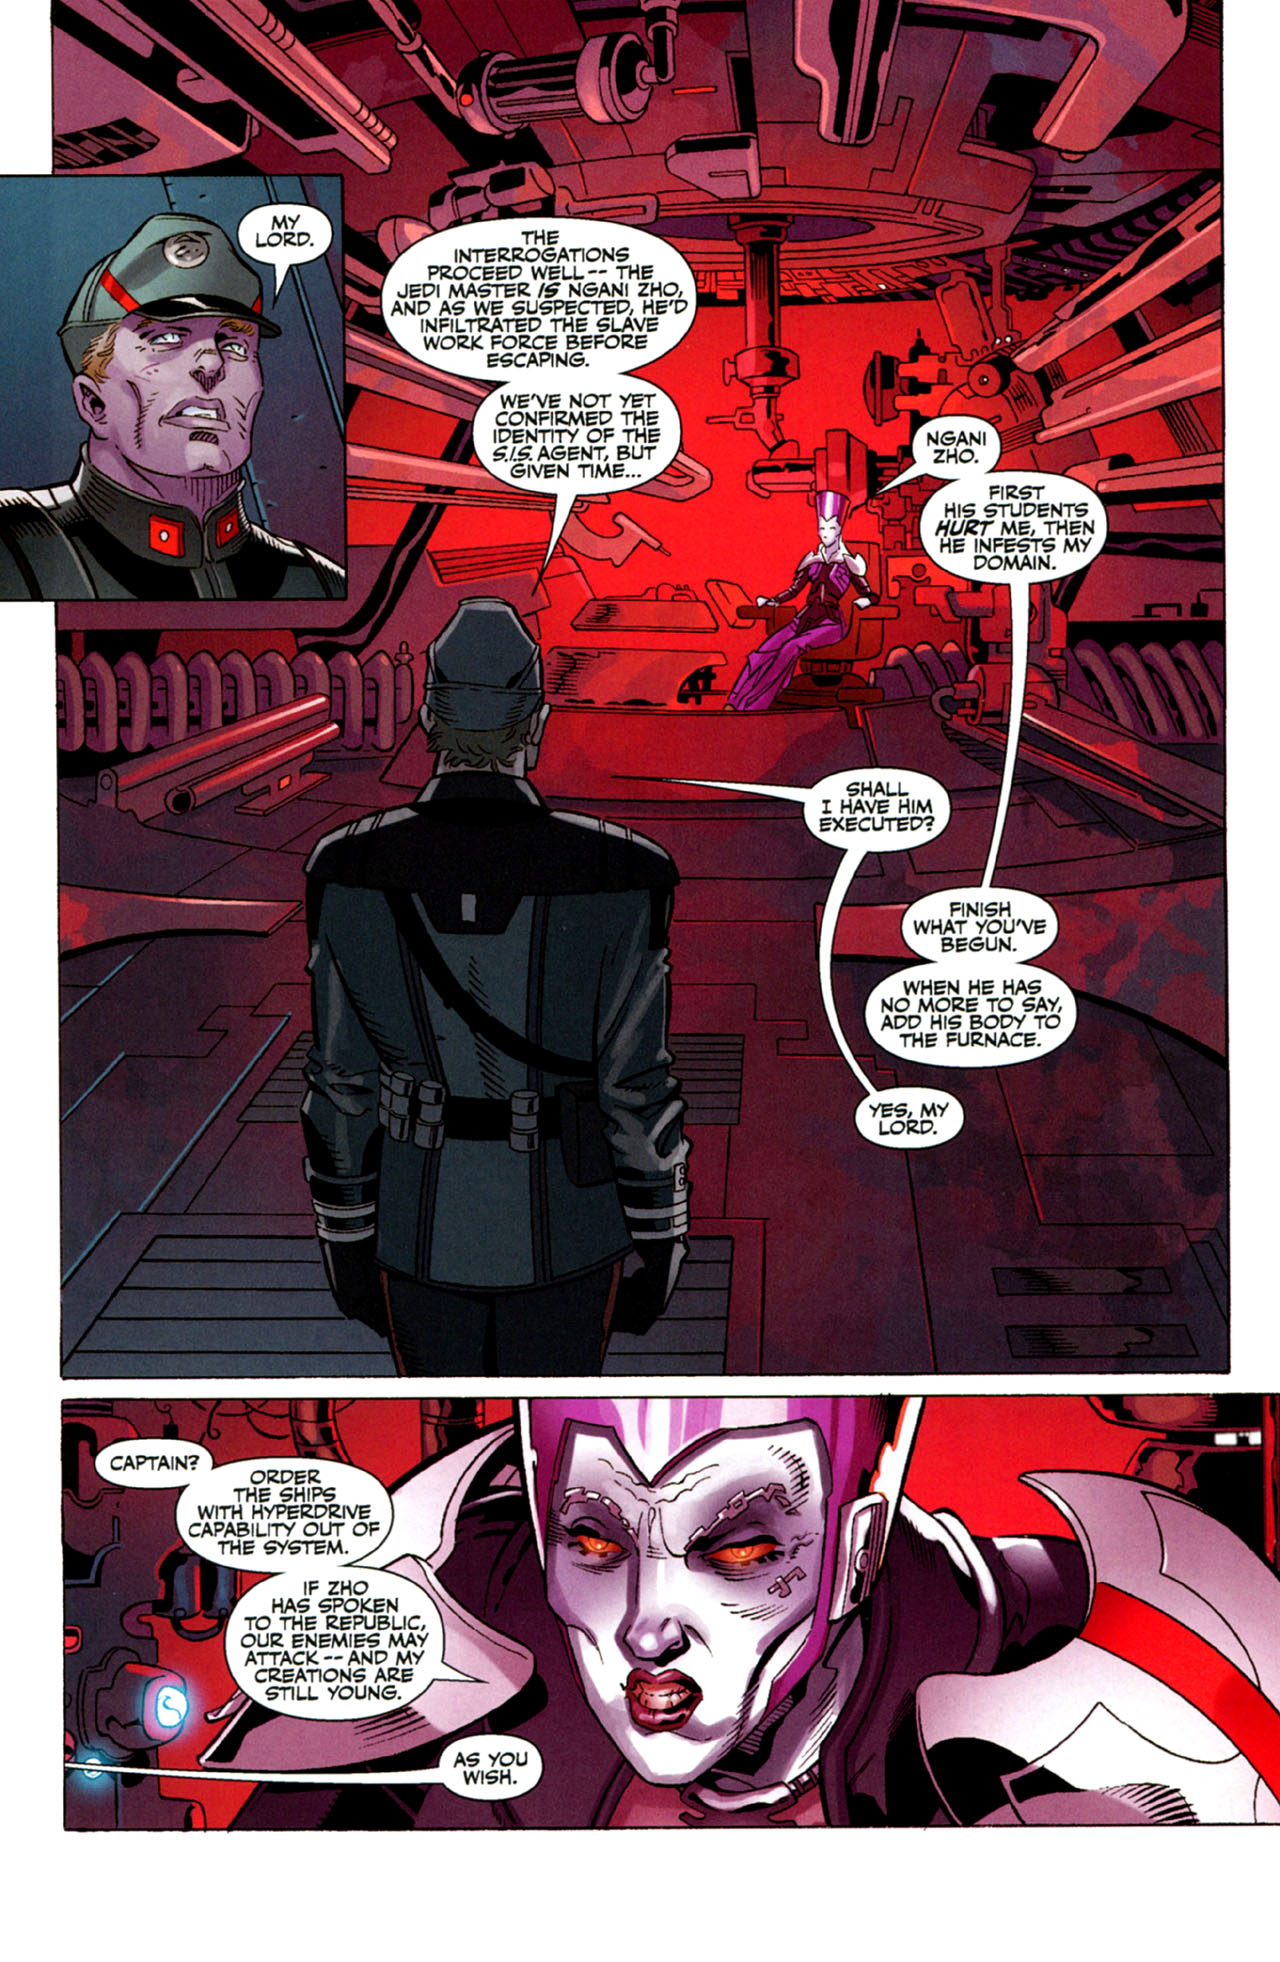 Read online Star Wars: The Old Republic - The Lost Suns comic -  Issue #4 - 17